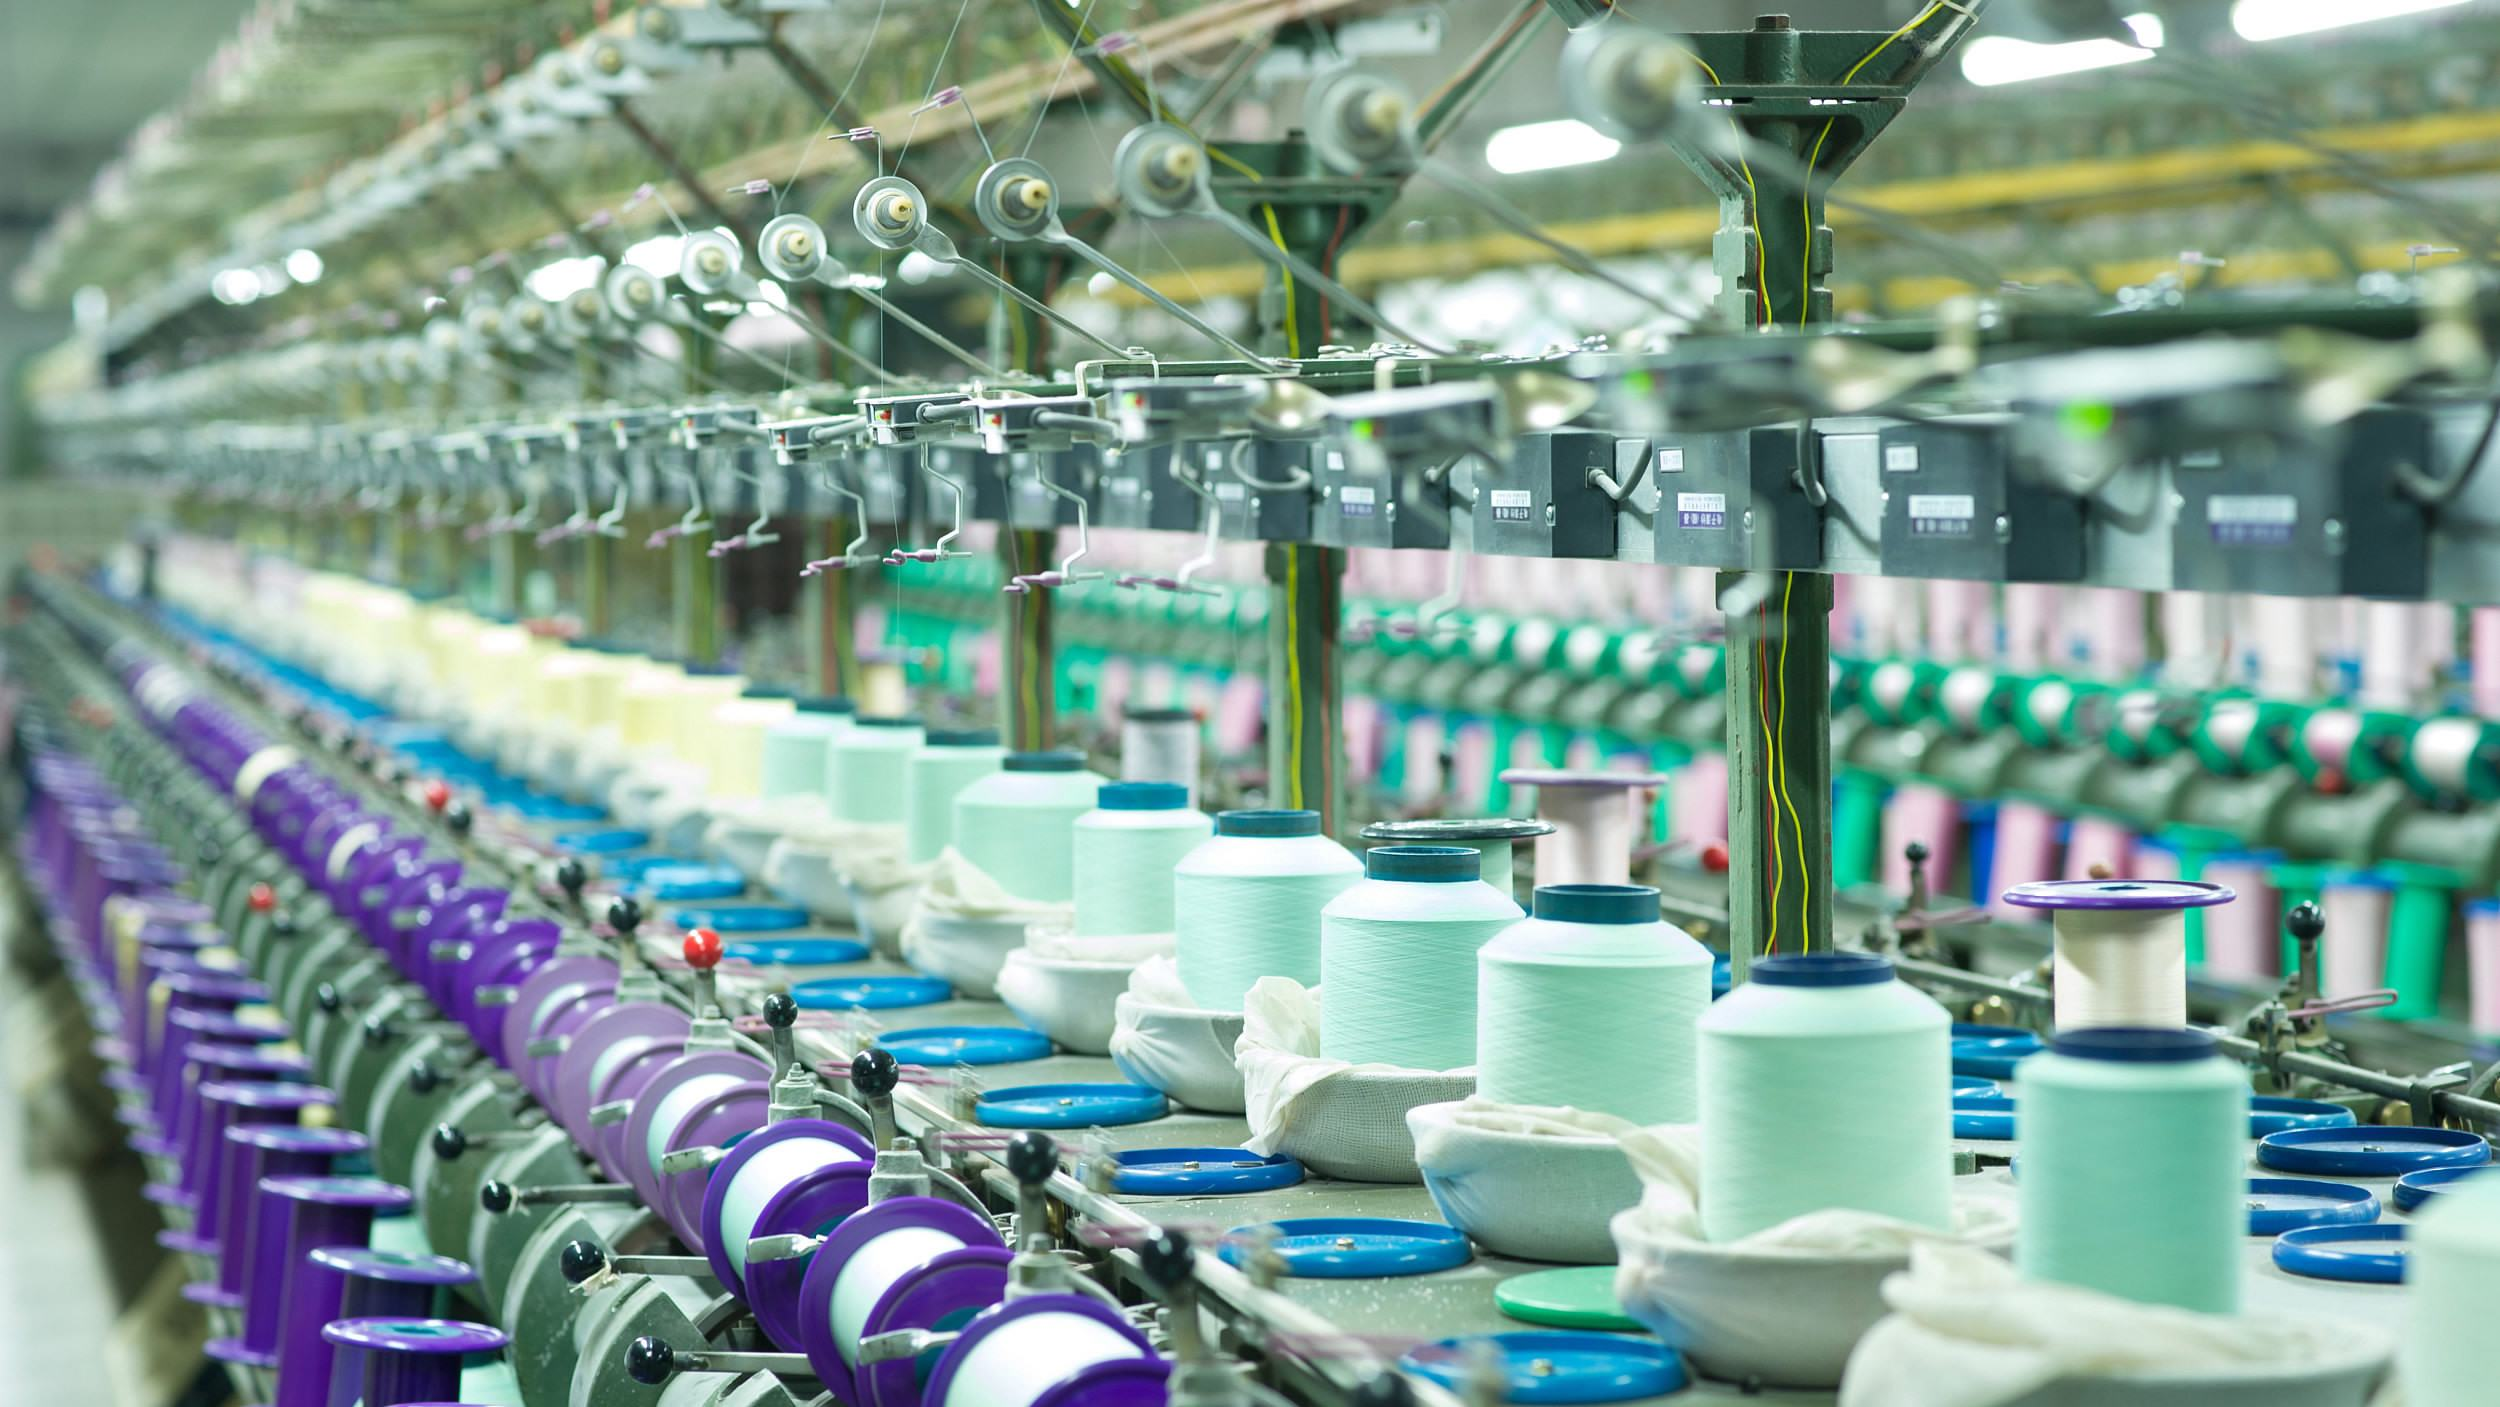 competition in indias textile industry Start studying industrial revolution learn were in competition with indian gov put taxes on british textiles to protect indian textile industry.